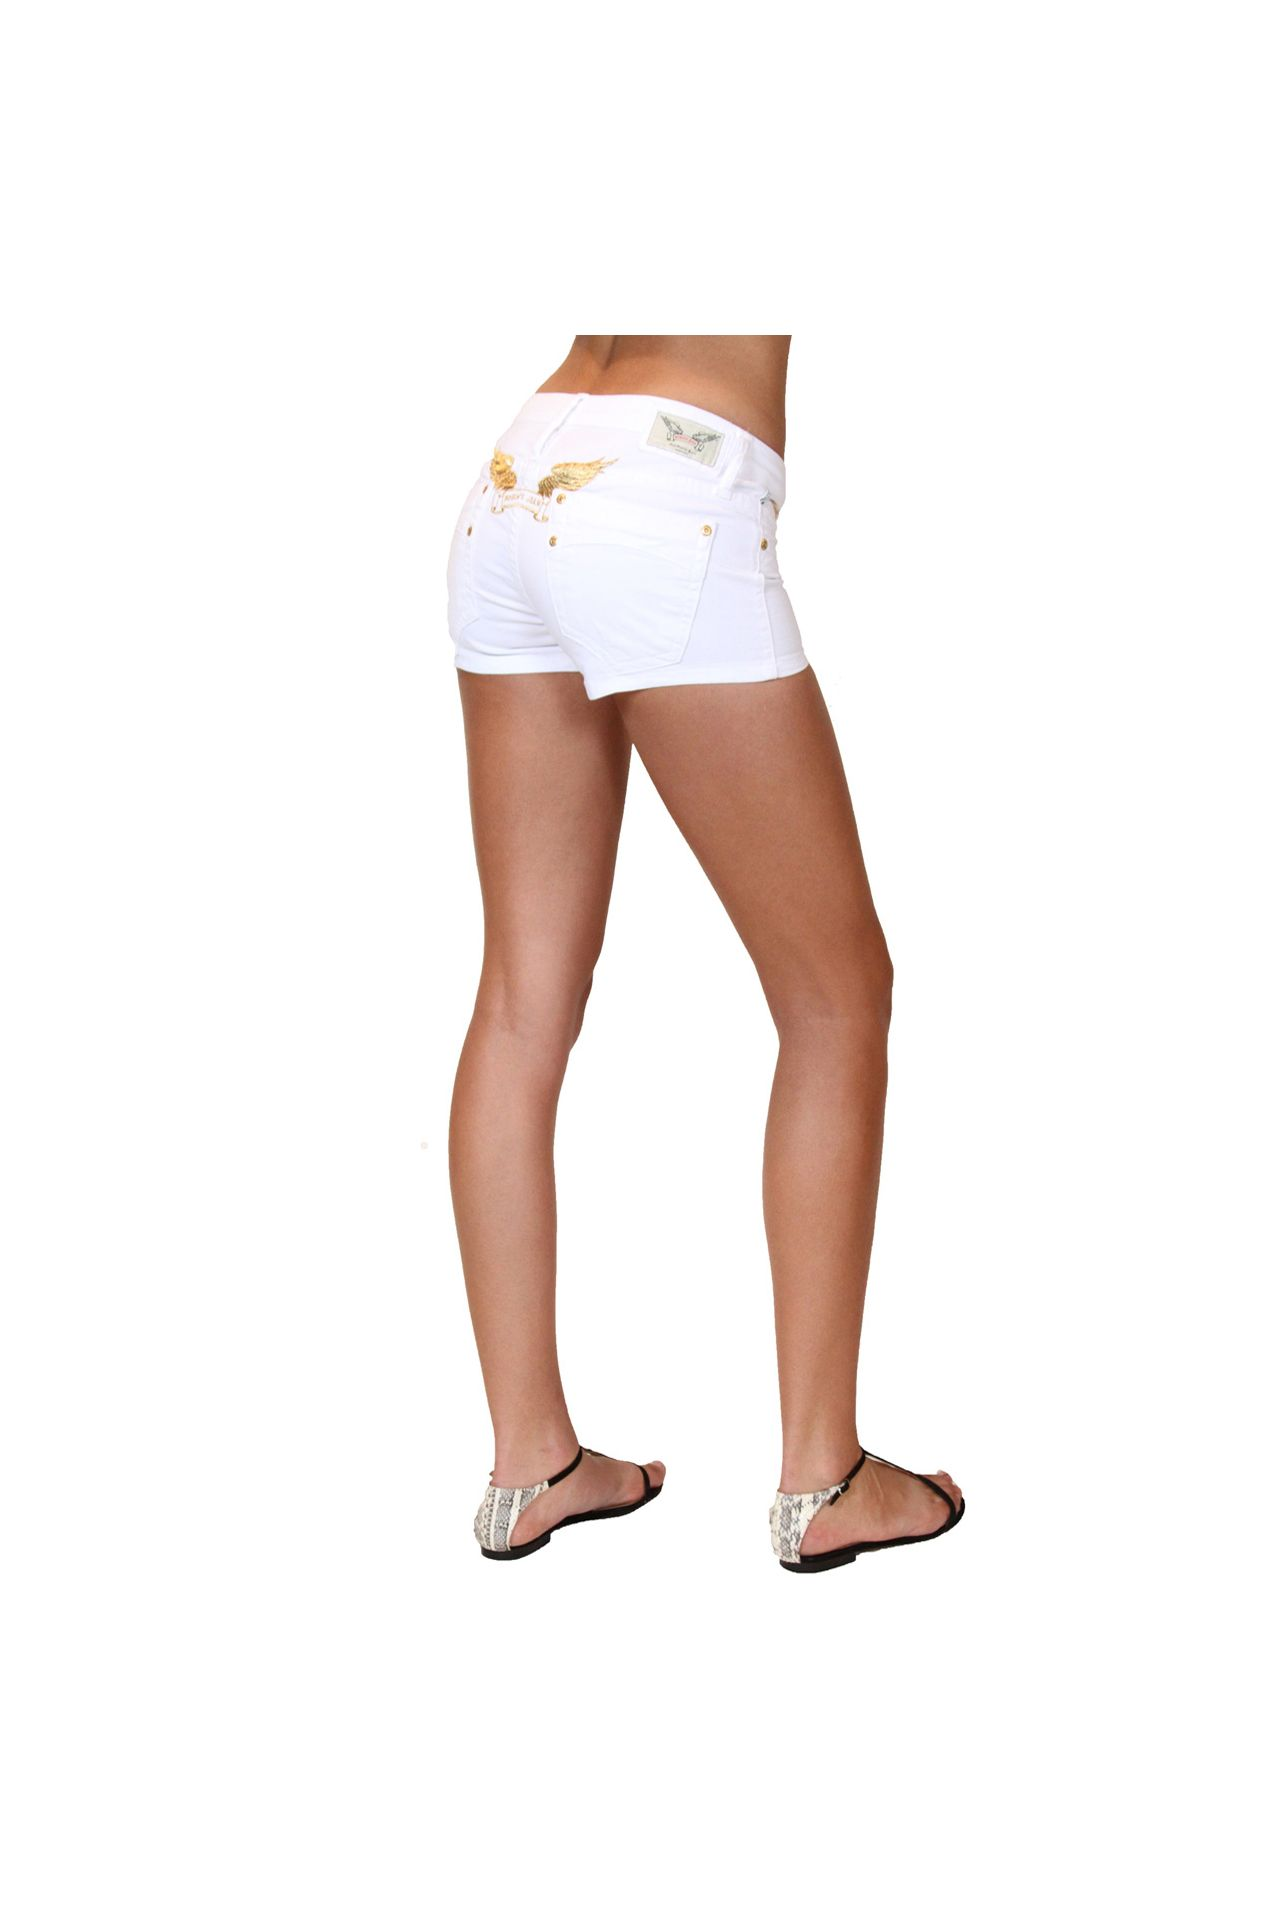 MARILYN SHORT WHITE